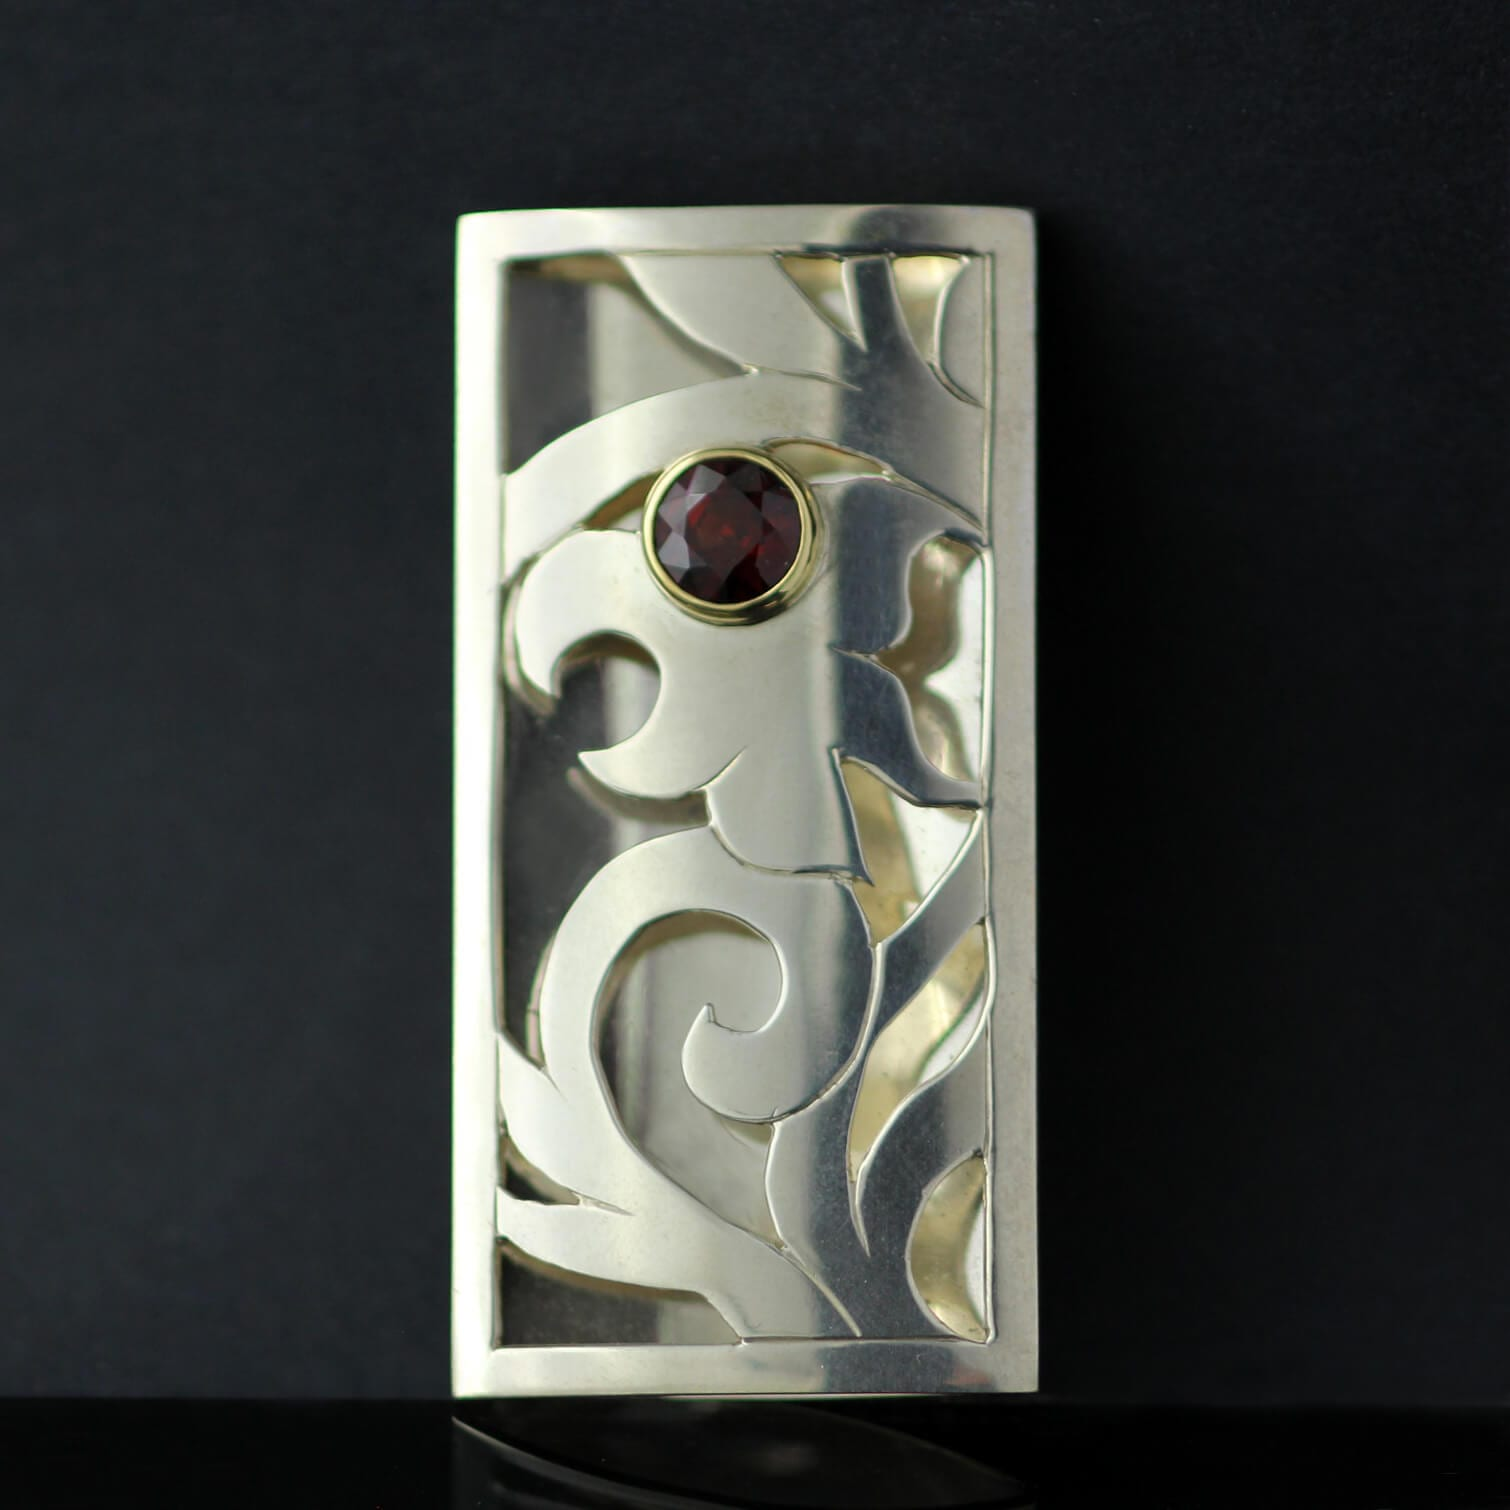 Handmade Sterling Silver Yellow Gold layered hand pierced brooch with Round Brilliant Garnet gemstone